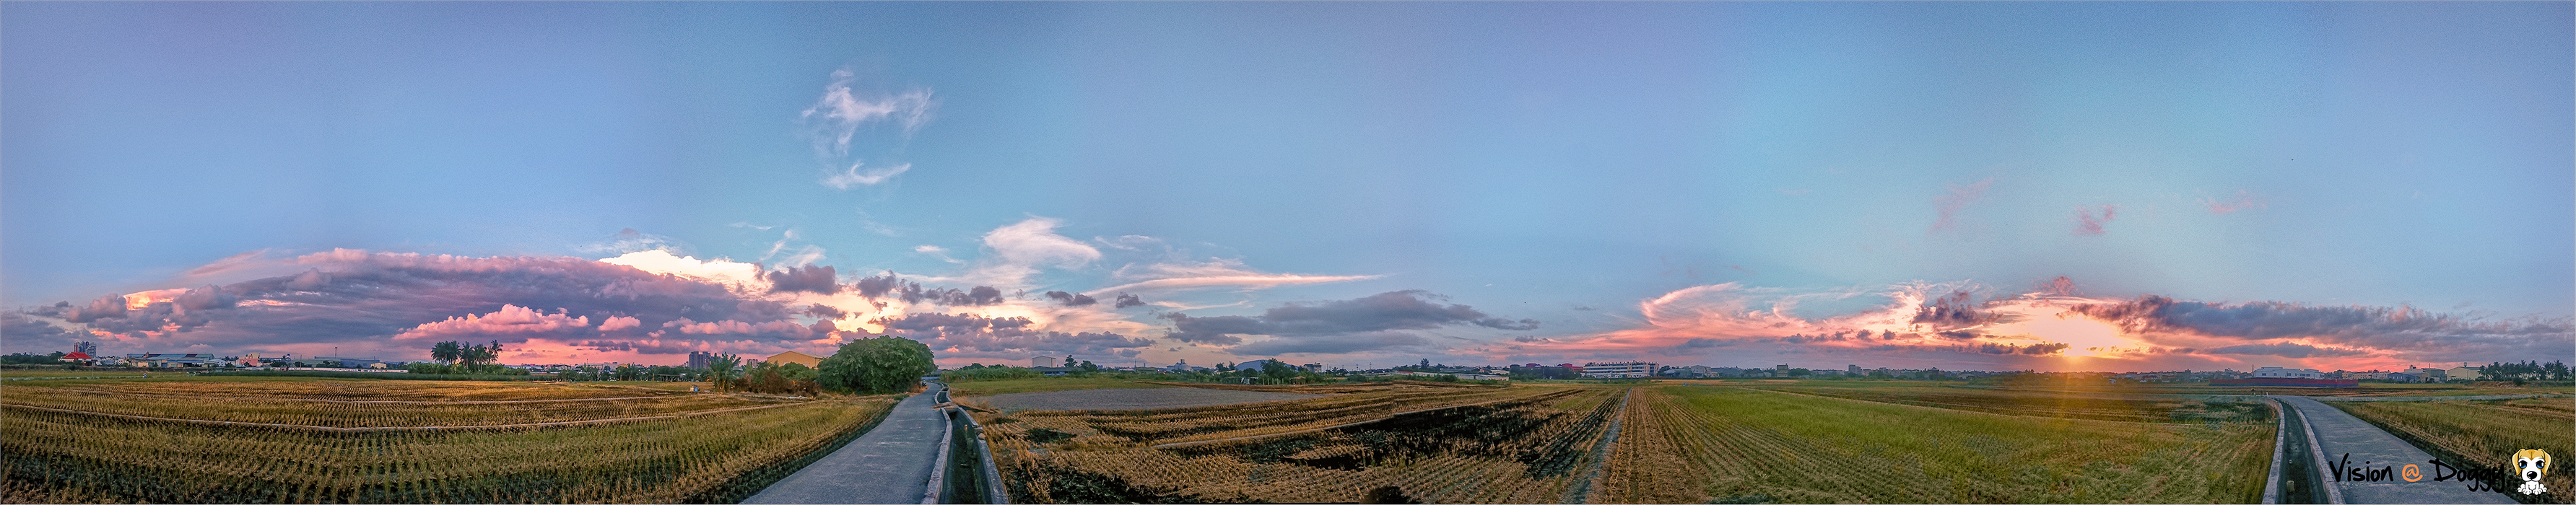 http://gnl.hunternet.com.tw/weider/web/wp-content/gallery/keliao/pic-20180605-01-sunset-z3.png